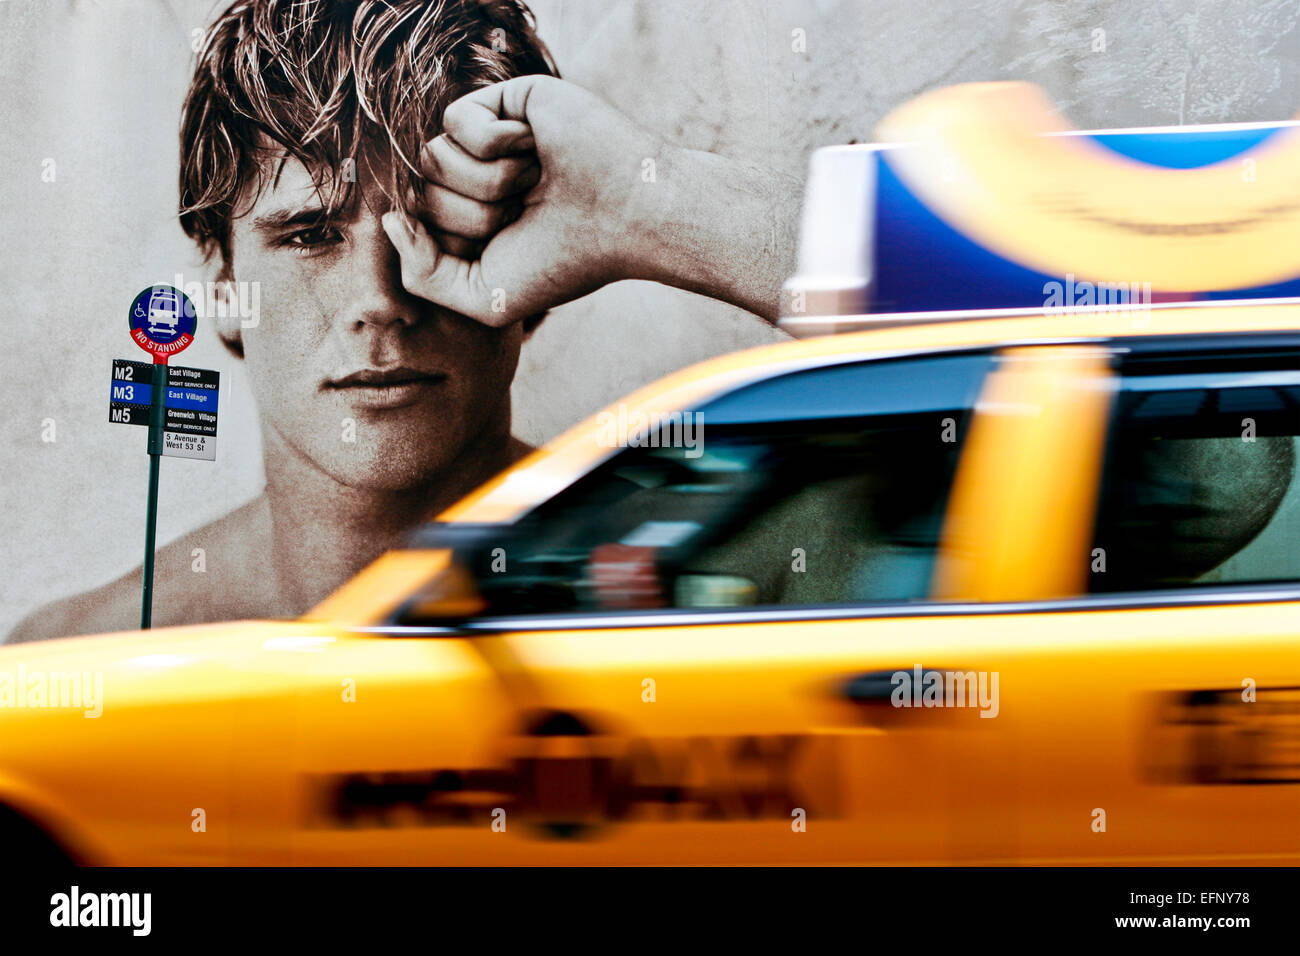 Handsome young male model on fashion advertising billboards at bus stop, yellow cab taxi motion blur passing. 5th - Stock Image